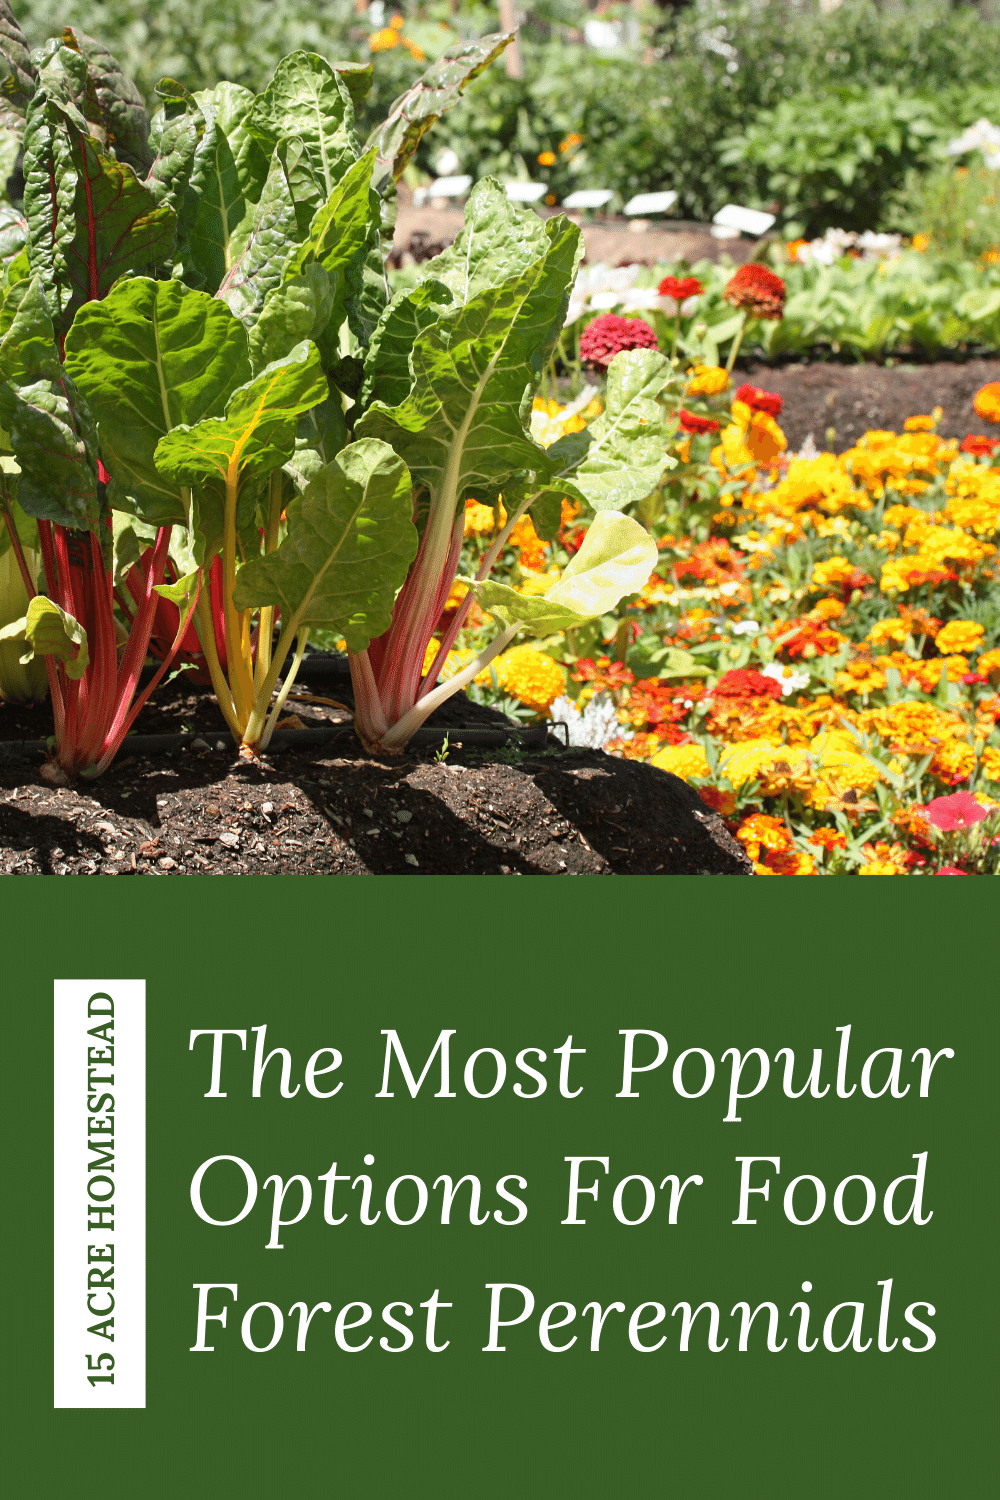 Choosing the perennials for your edible food forest on your homestead can be a lot of fun. This post shares some options that grow well in most climates.